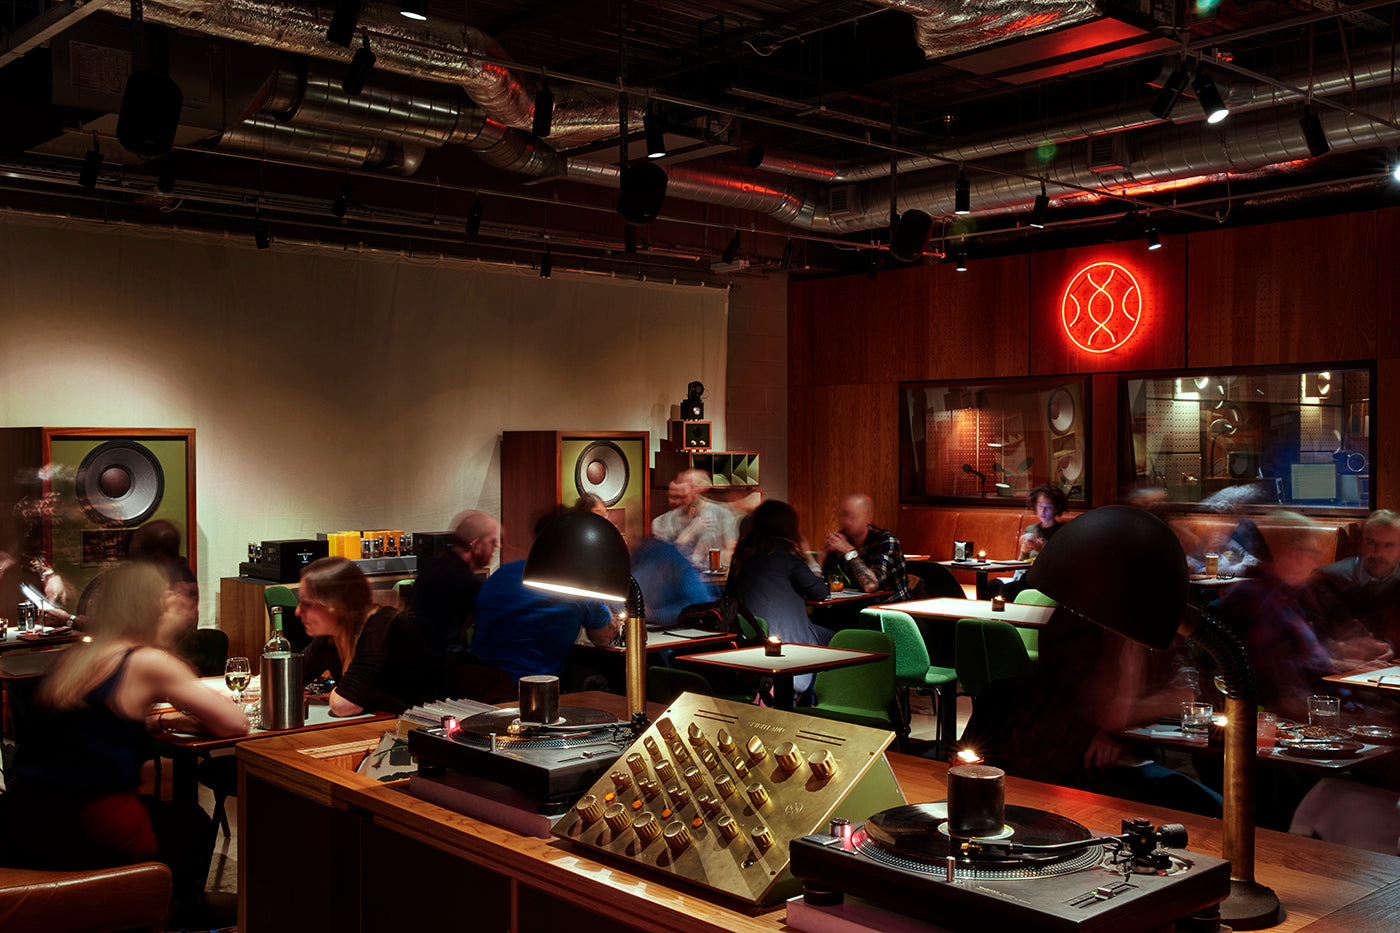 Spiritland for gestalten article (Photo: Adam Scott)